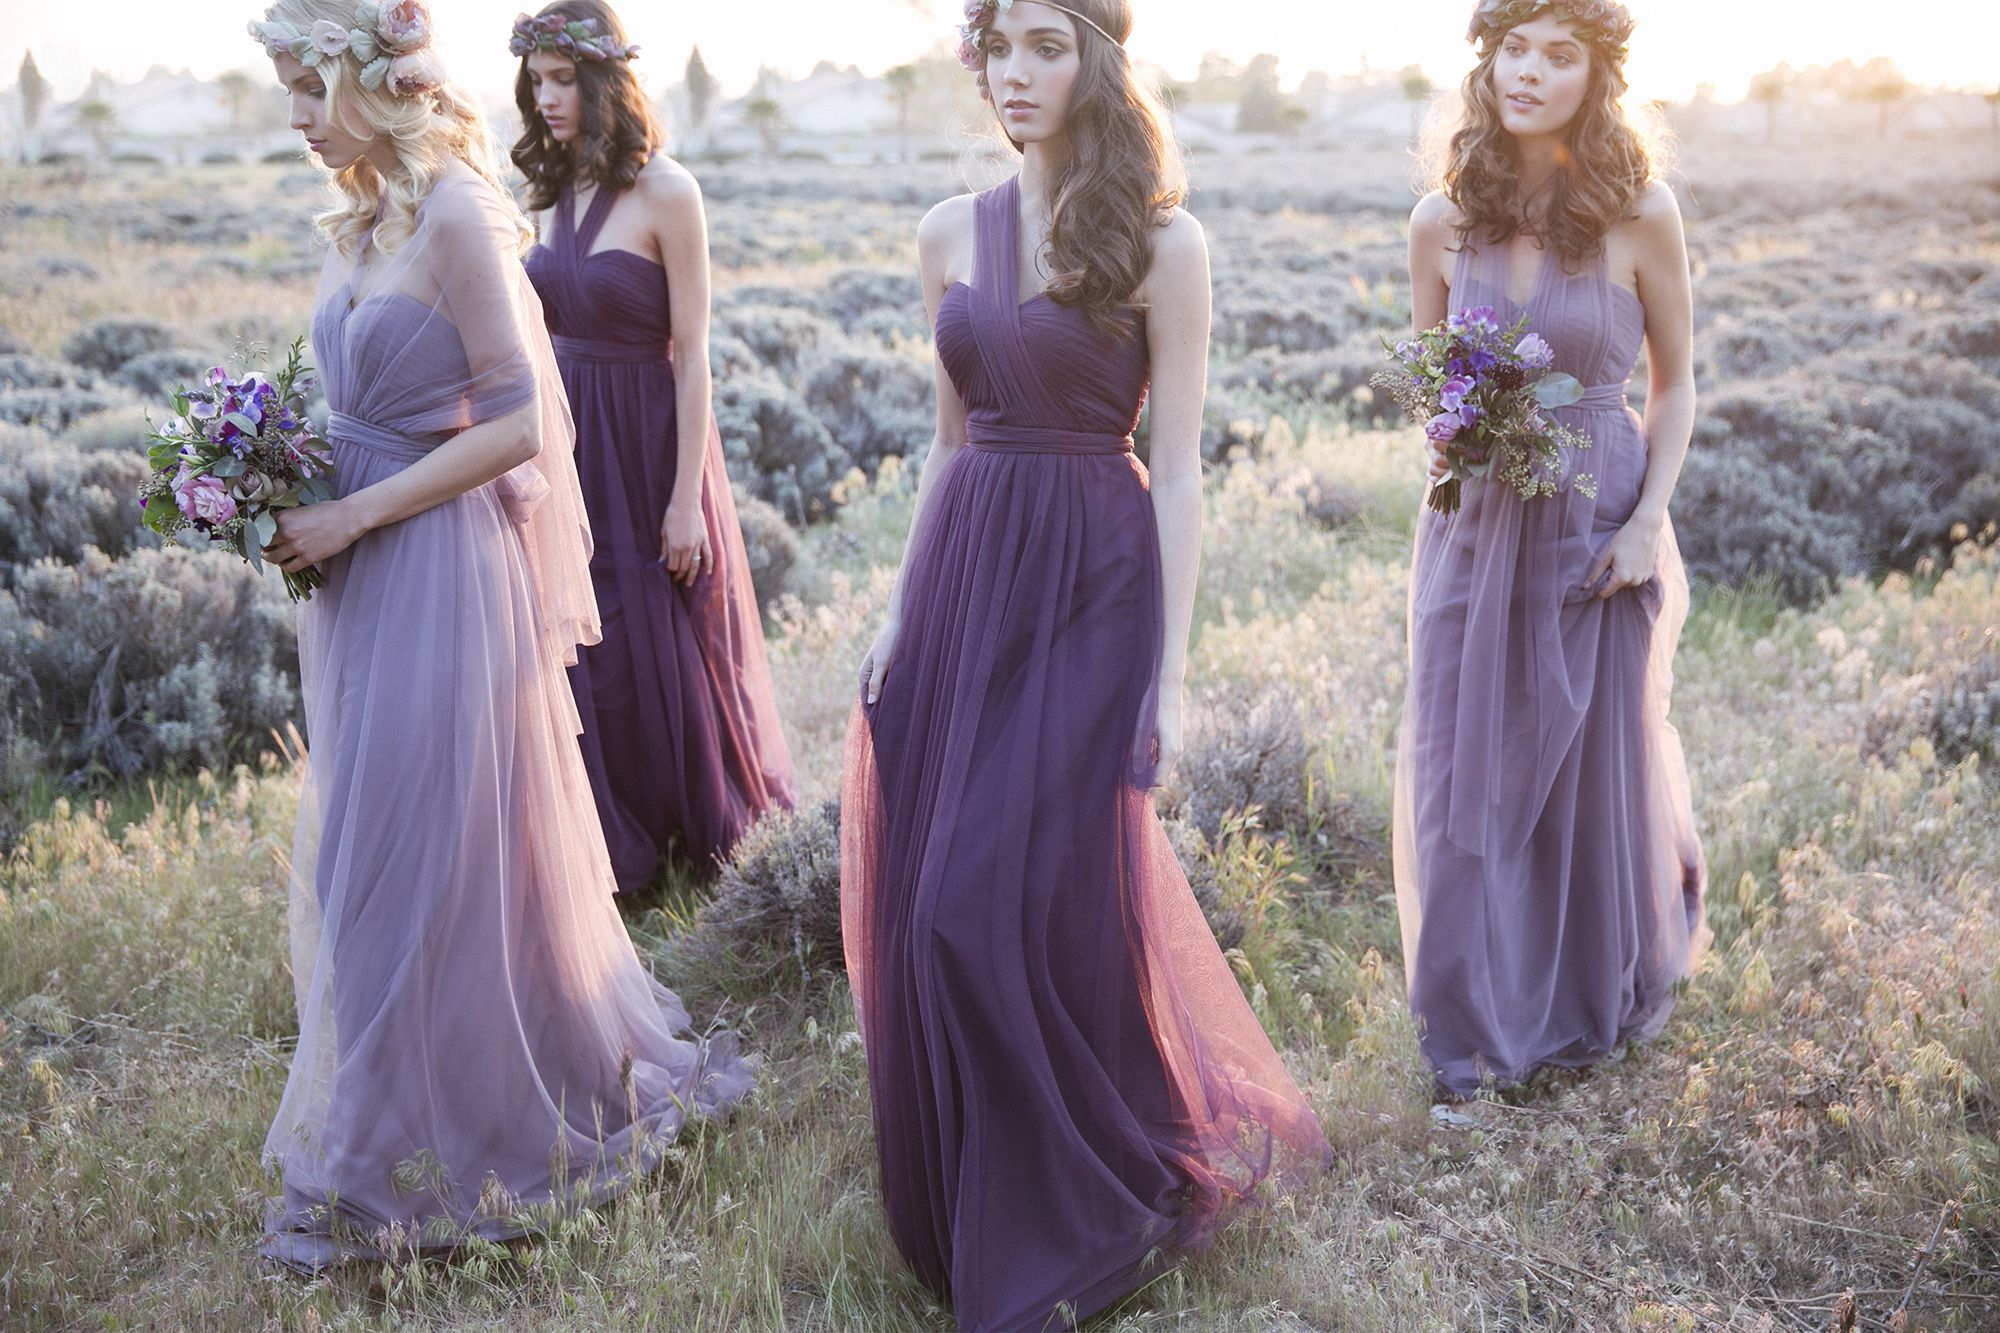 We Ve Fallen Head Over Heels For This Ethereal And Bridesmaids Dress By Jenny Yoo Available At Nordstrom